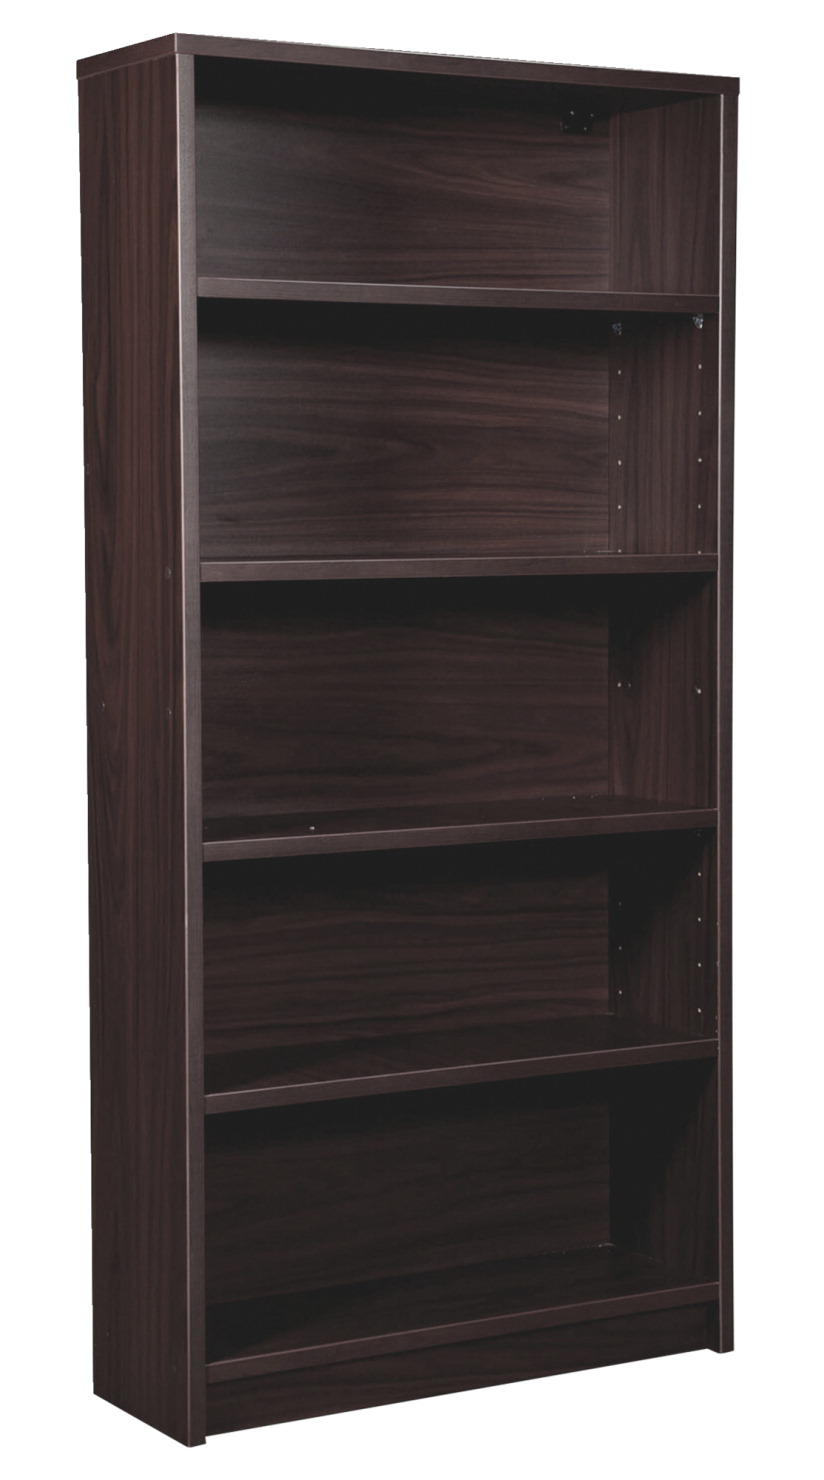 h fd bookcases bookcase x corner oak products traditional